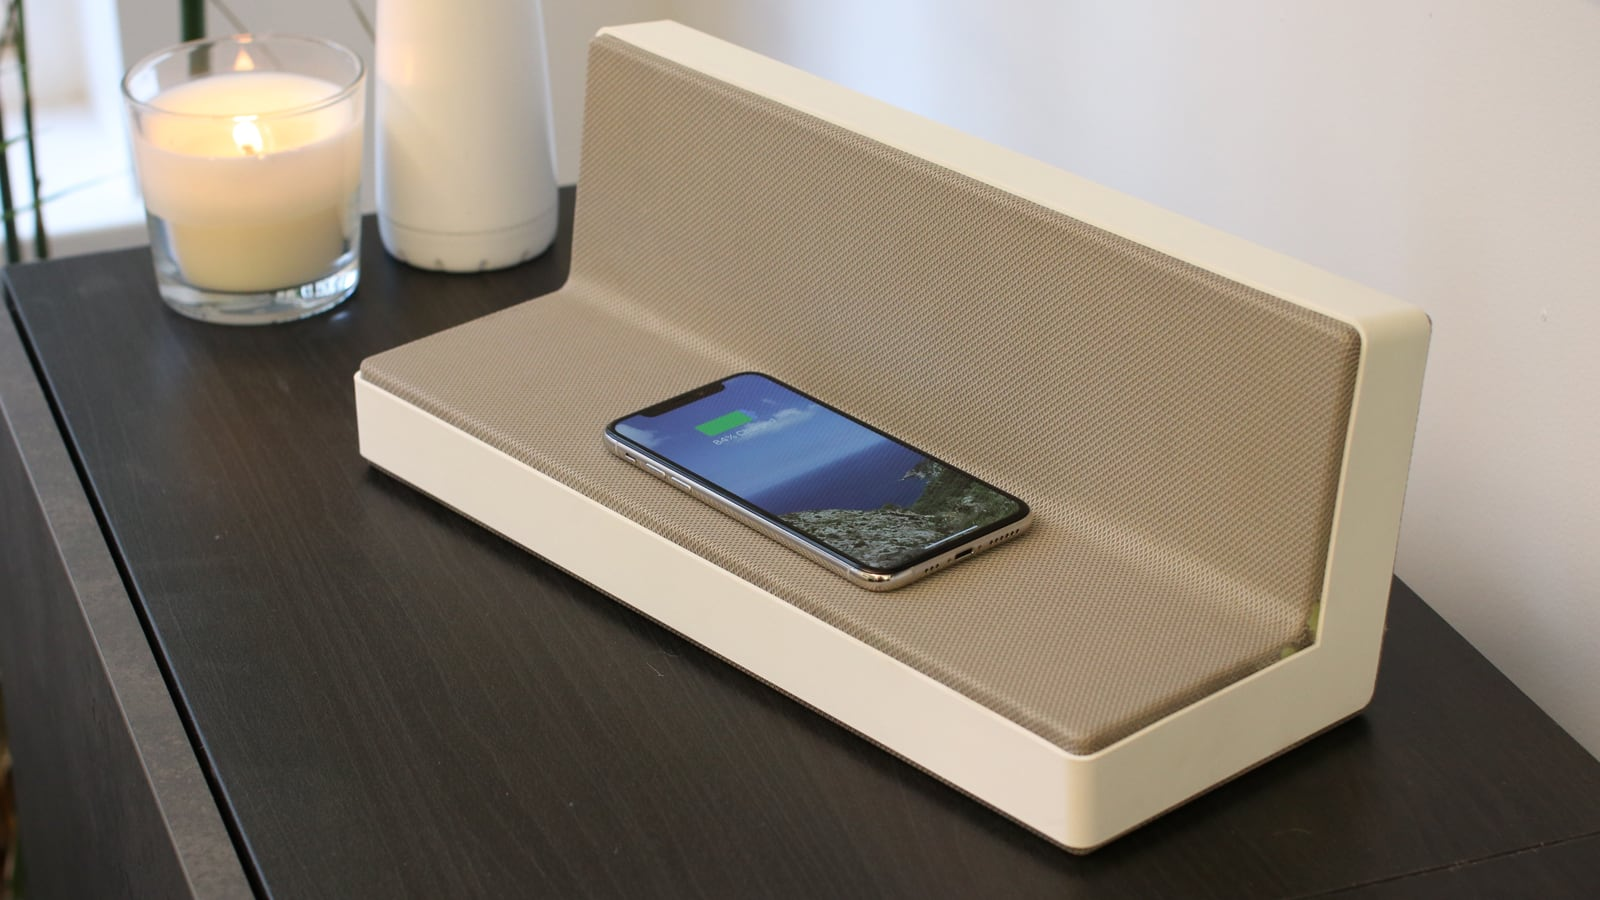 Solgaard HomeBase Solar Boombox Ecosystem has a built-in wireless charger and amplifier